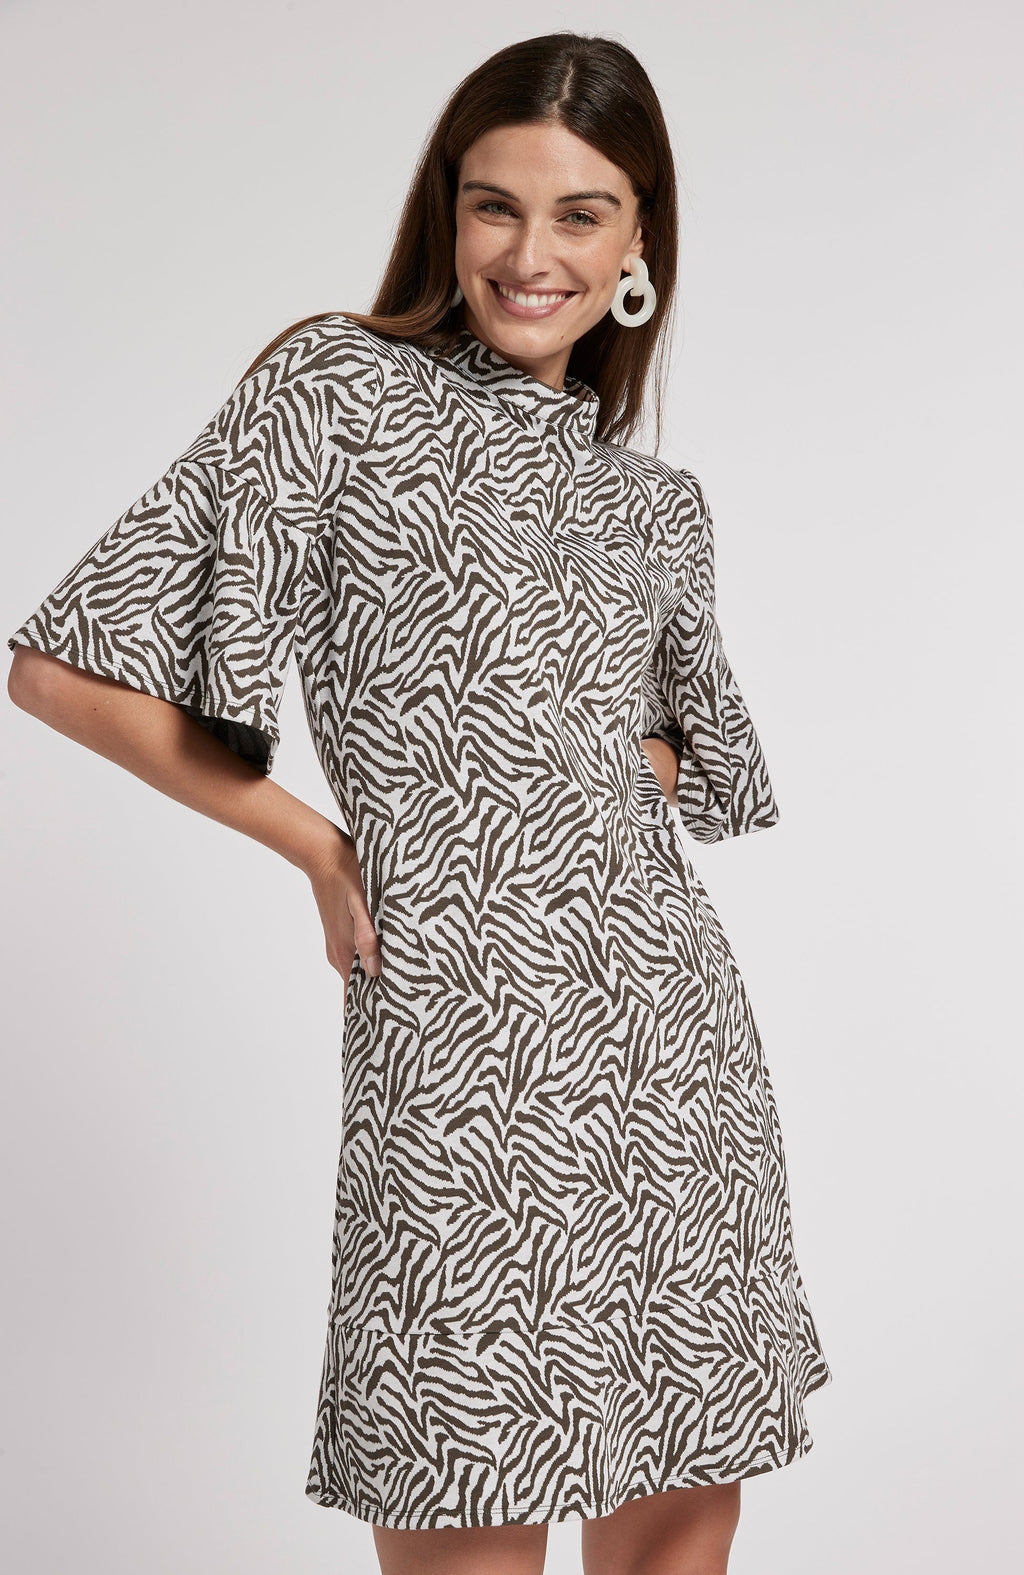 MINDY JACQUARD DRESS - ZCW TylerBoe XS ZCW